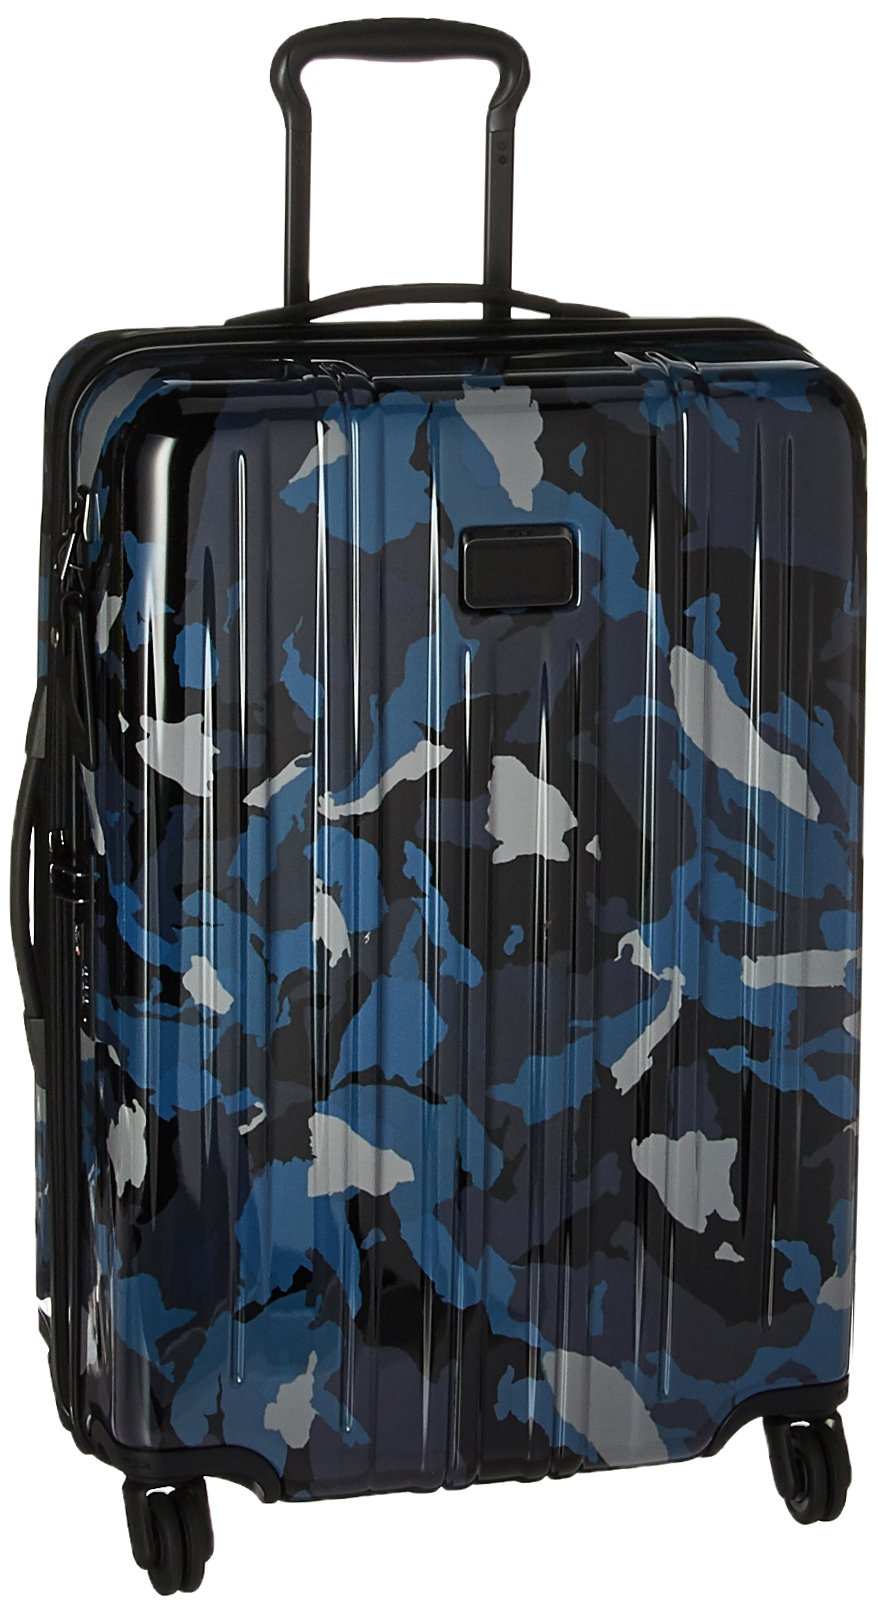 Tumi V3 Extended Trip Expandable Packing Case, Blue Camo by Tumi